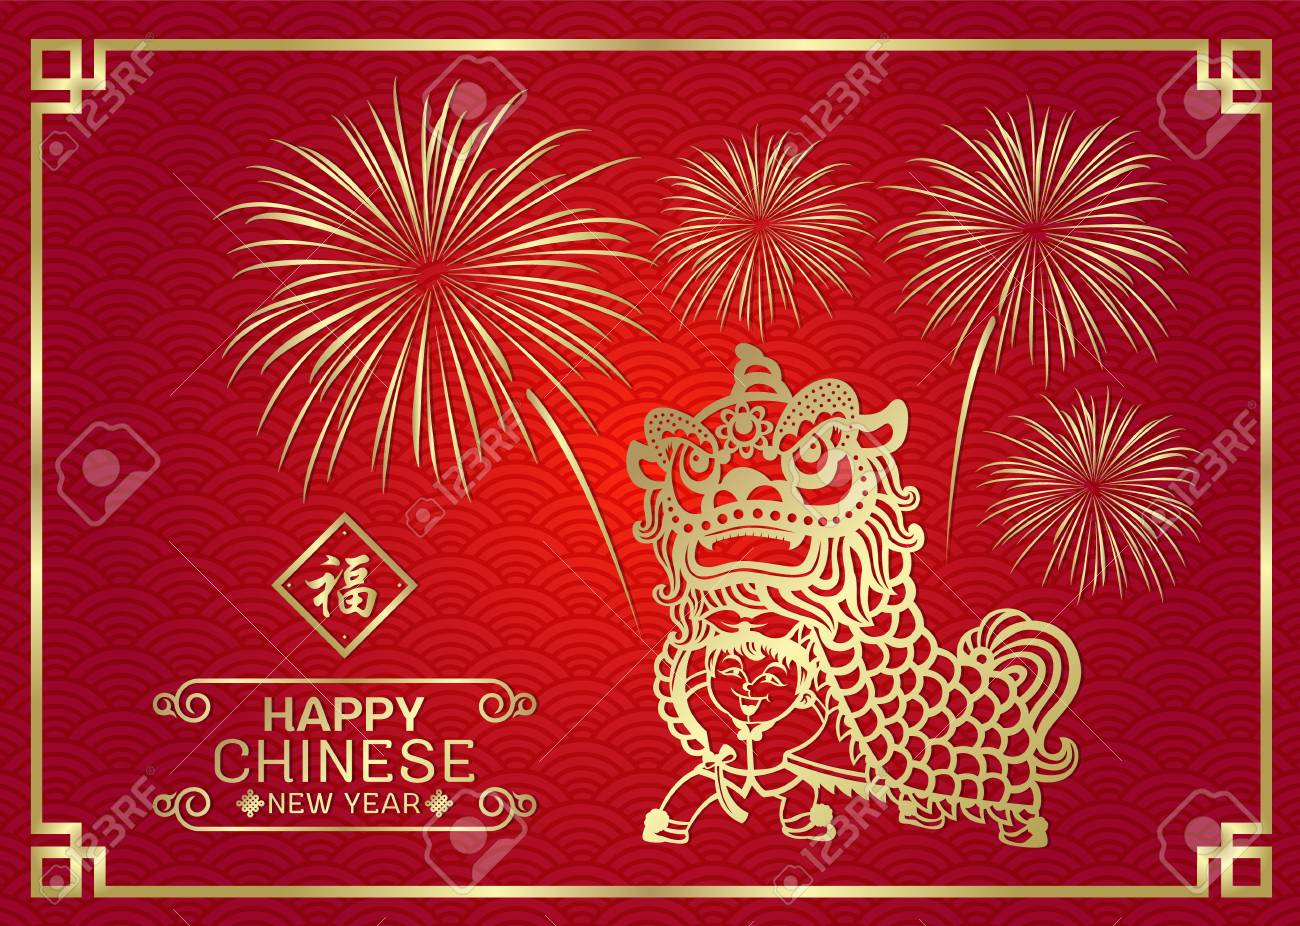 happy chinese new year card with gold china lion dance by chinese kids boy and firework